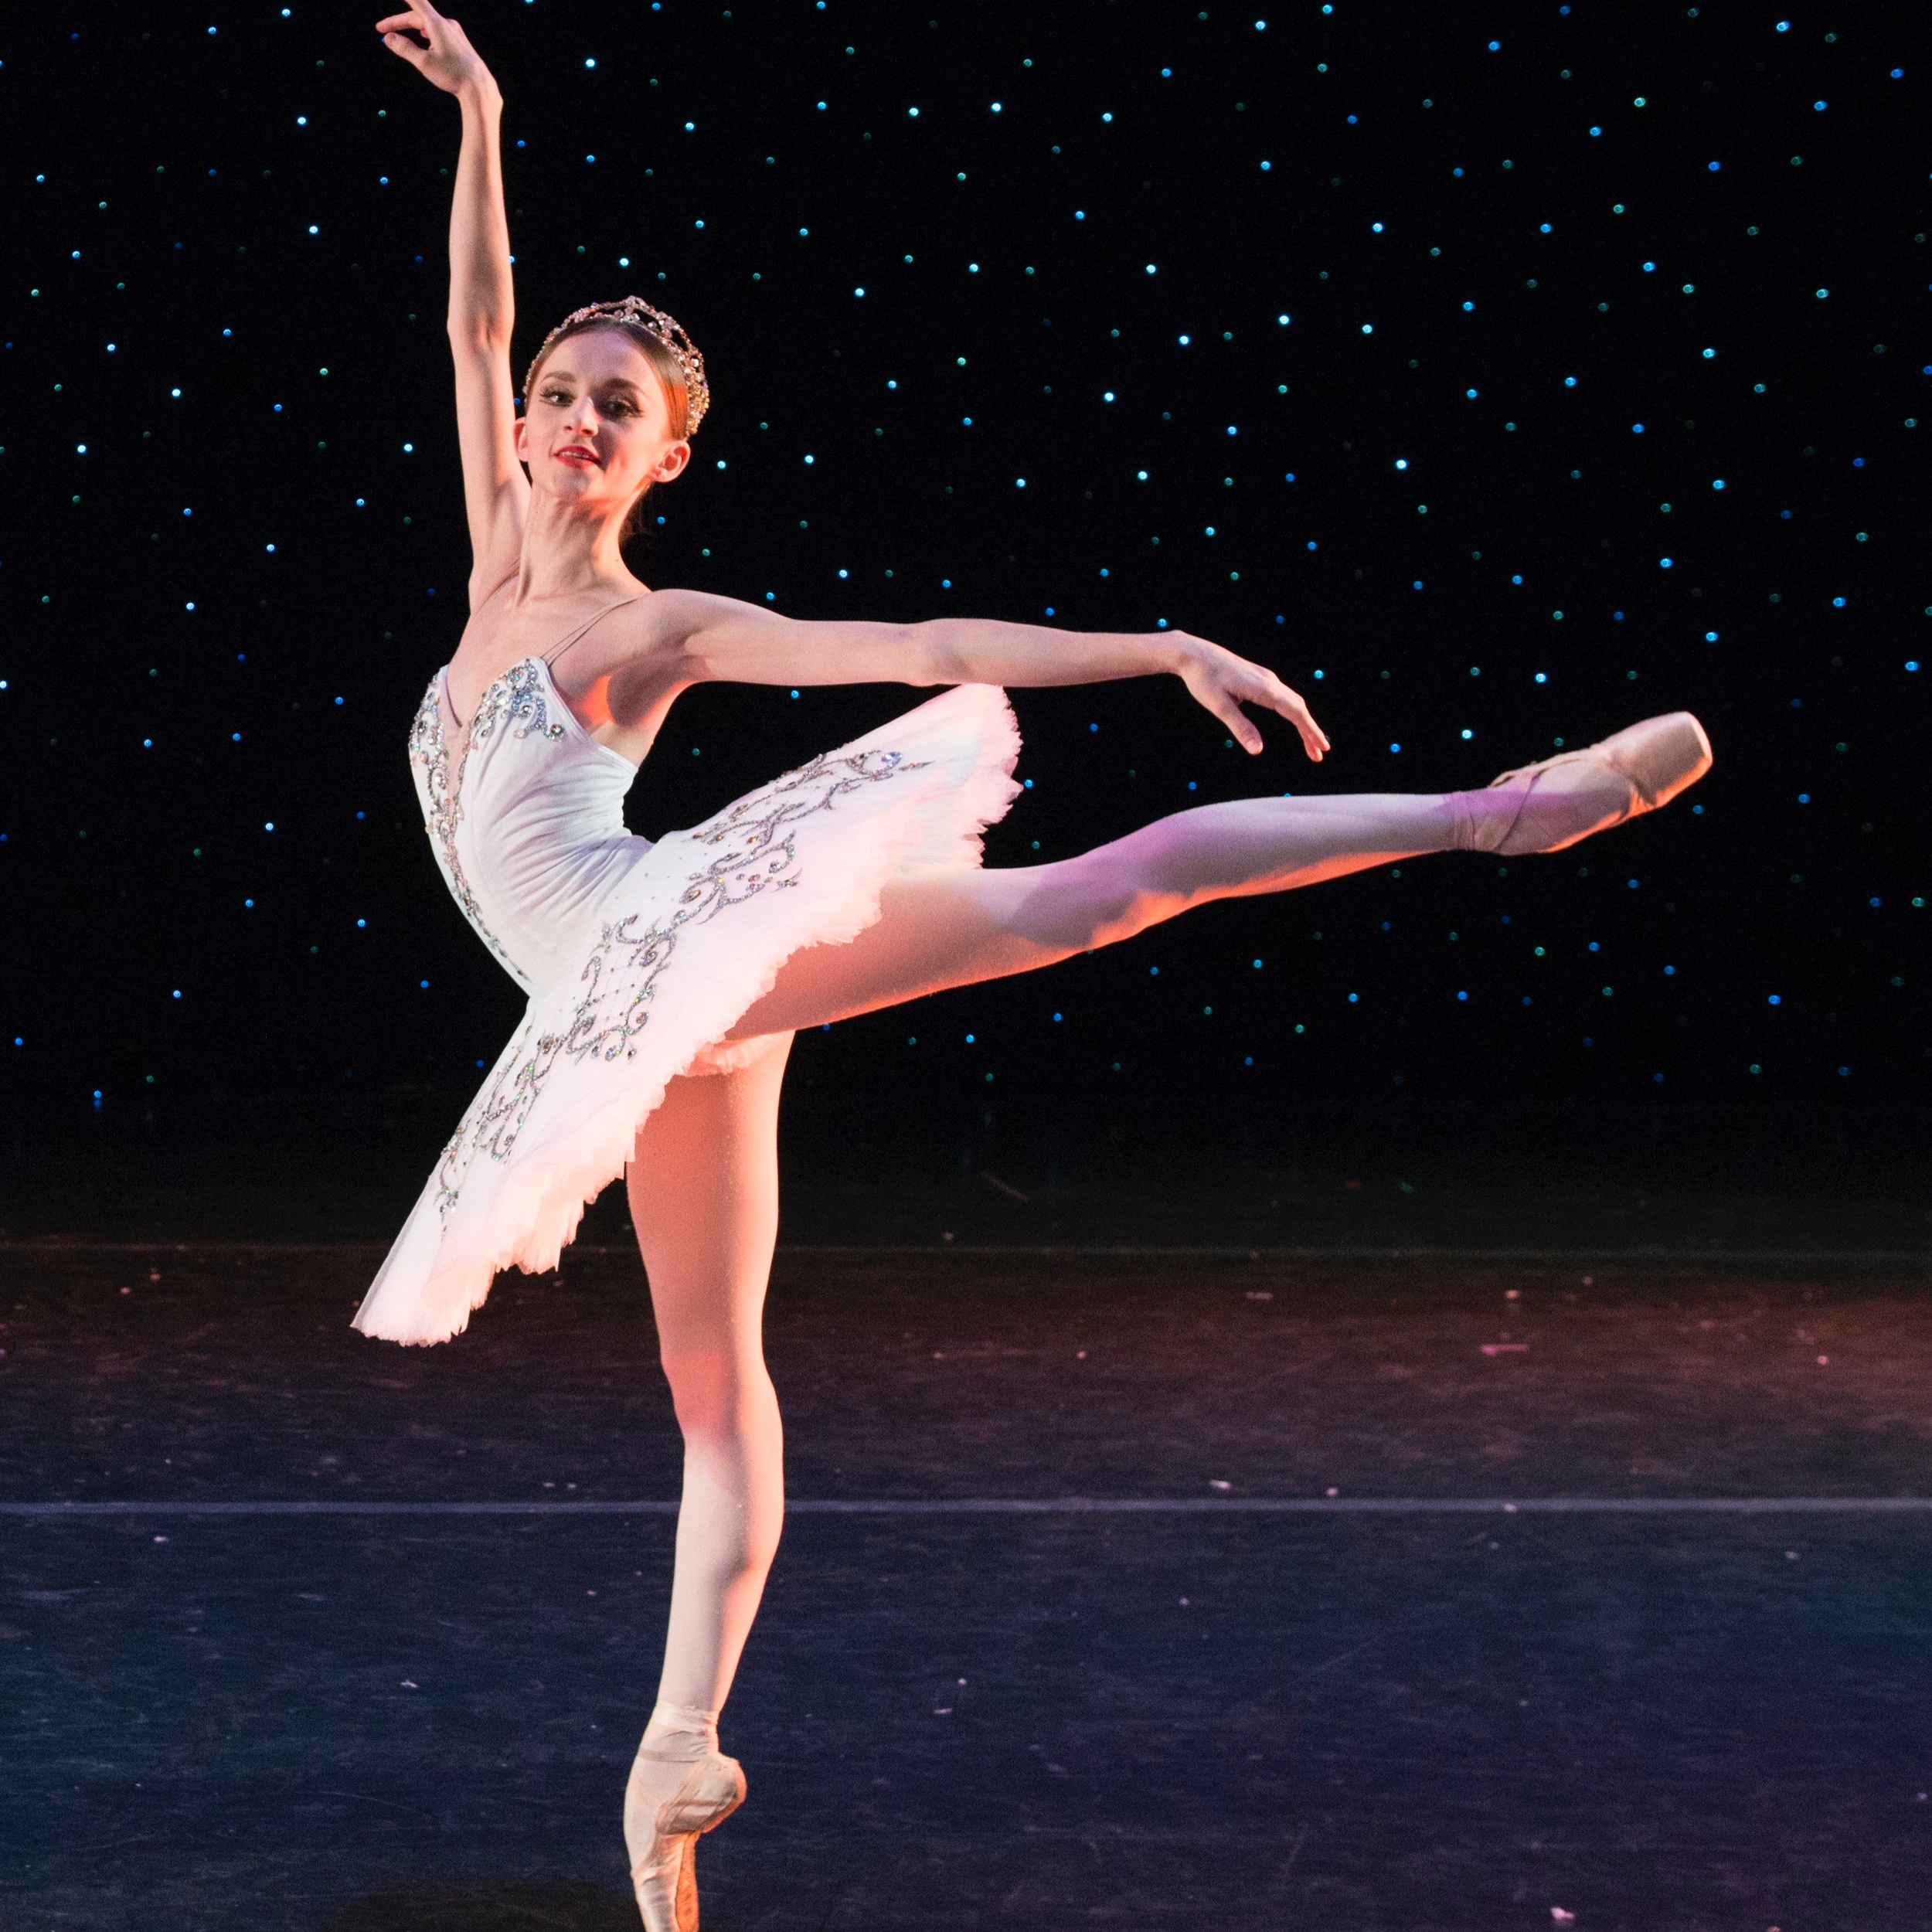 The Nutcracker - November 30th - December 1st, 2019The Oncenter Crouse Hinds Theater